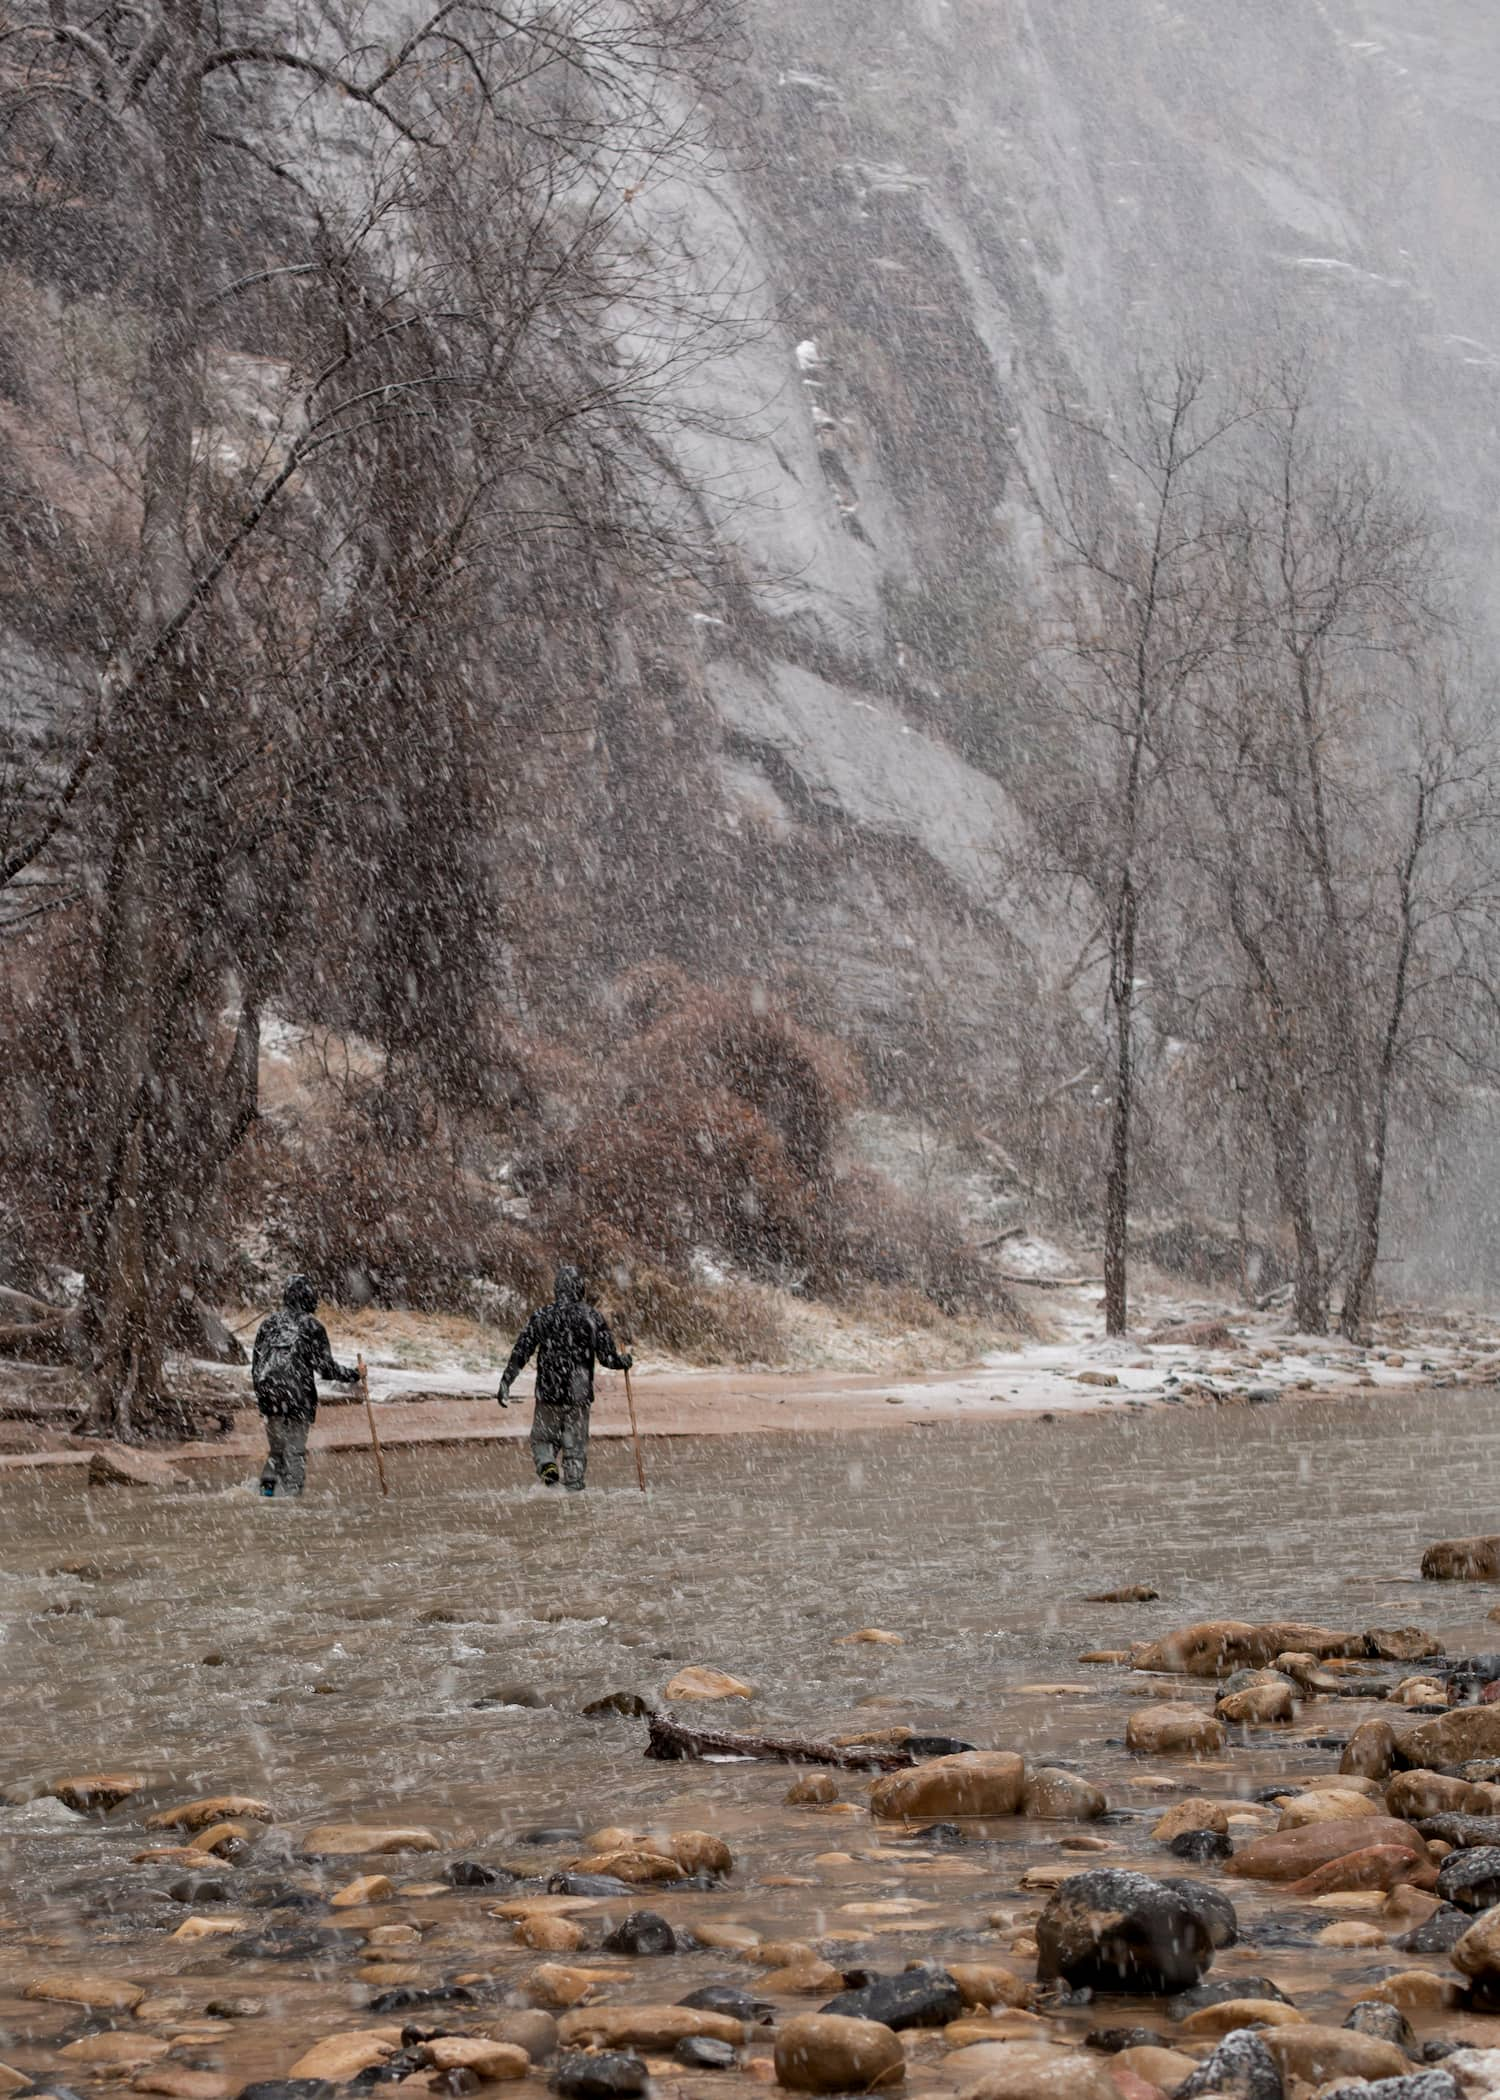 Two men make their way upstream in the Narrows in Zion national park on a cold snowy winter day.